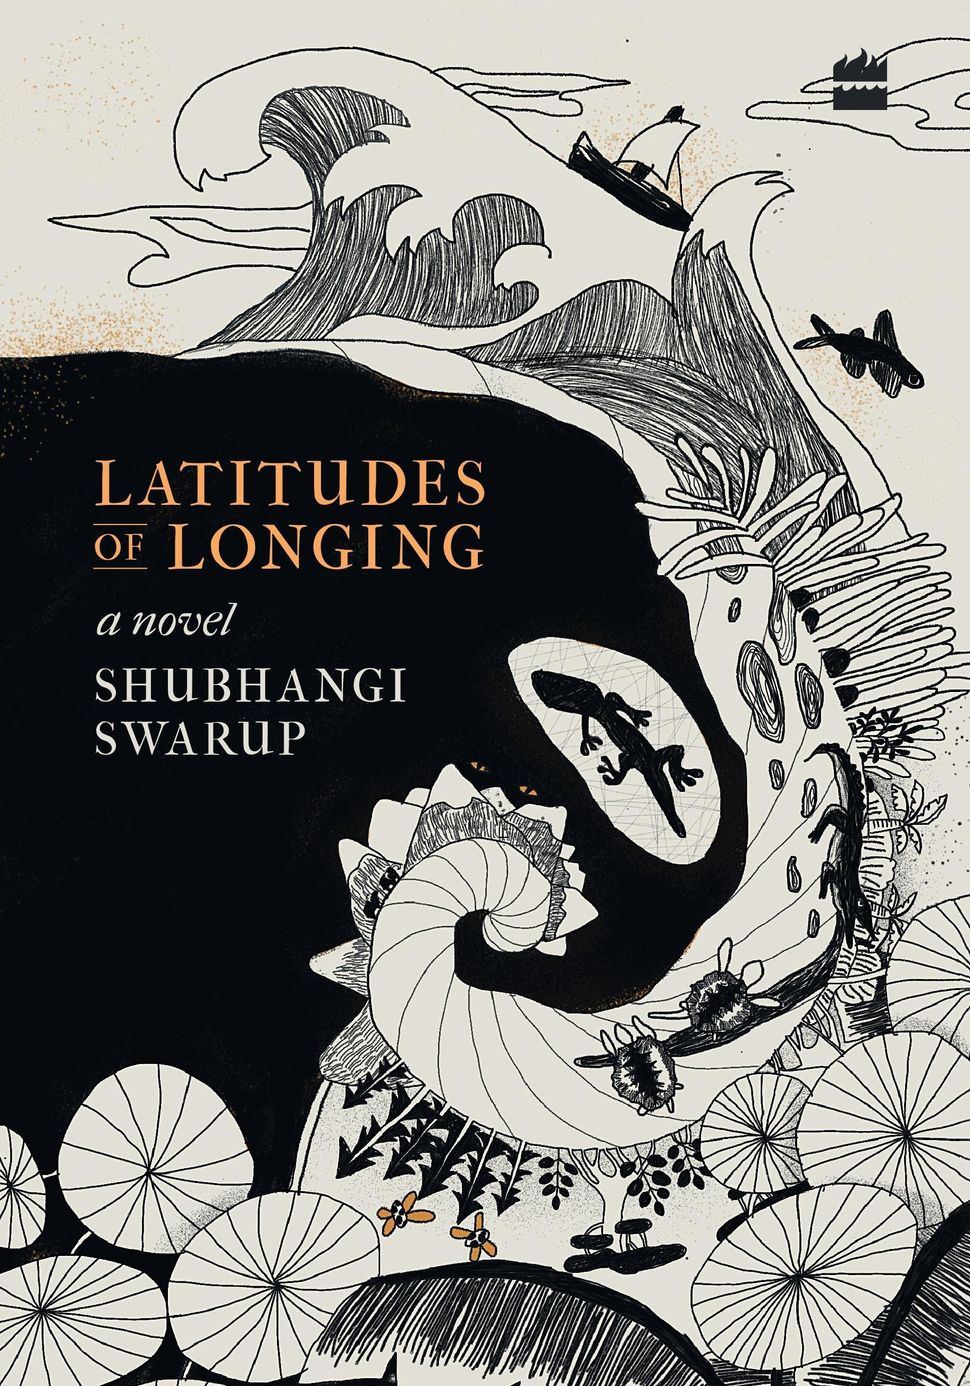 'Latitudes of Longing' is a perfect read for fans of Anita Desai and Arundhati Roy.